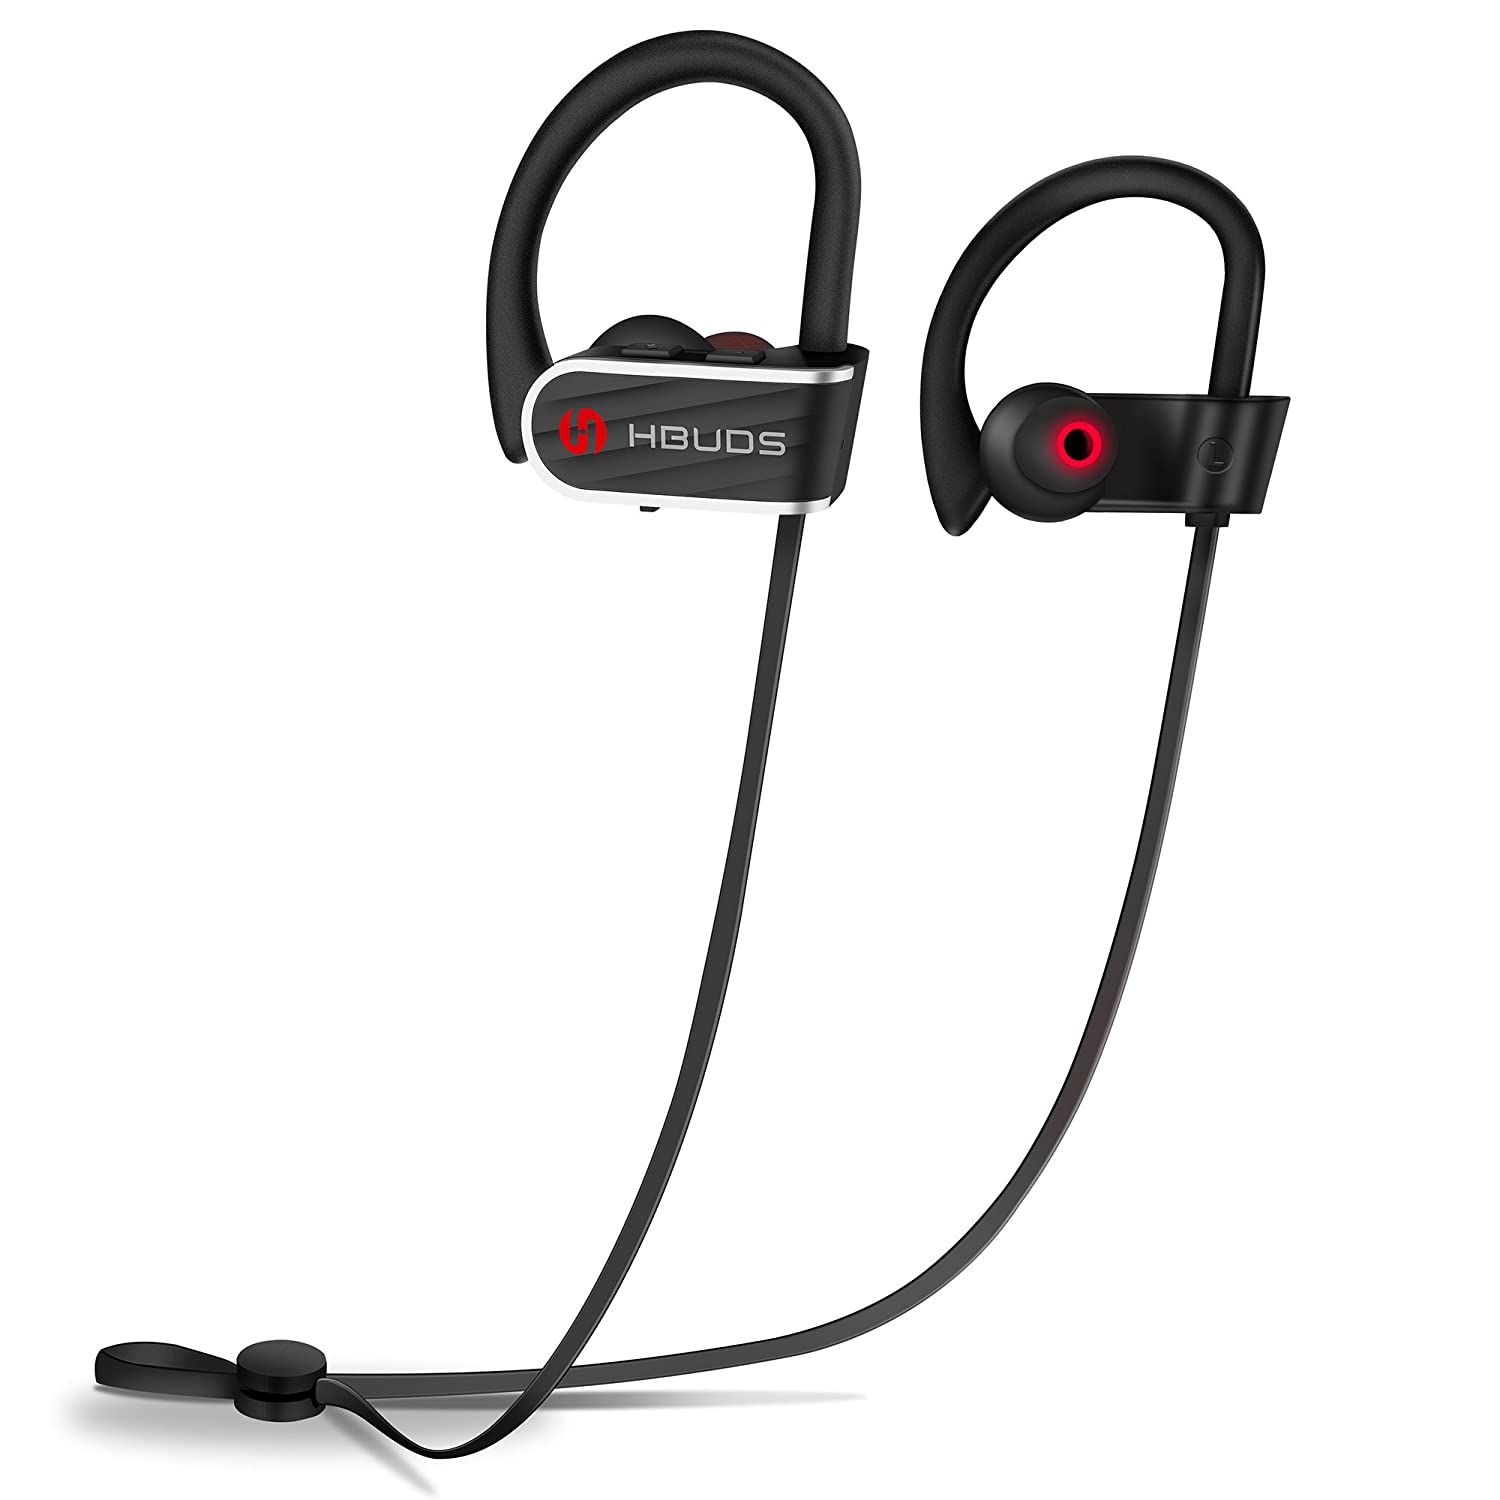 Bluetooth Headphones, Best Wireless Sport Earphones Hbuds H1 w Mic IPX7 Waterproof HD Stereo in Ear Earbuds for Gym Running Working Out 9 Hour Battery Noise Cancelling Black